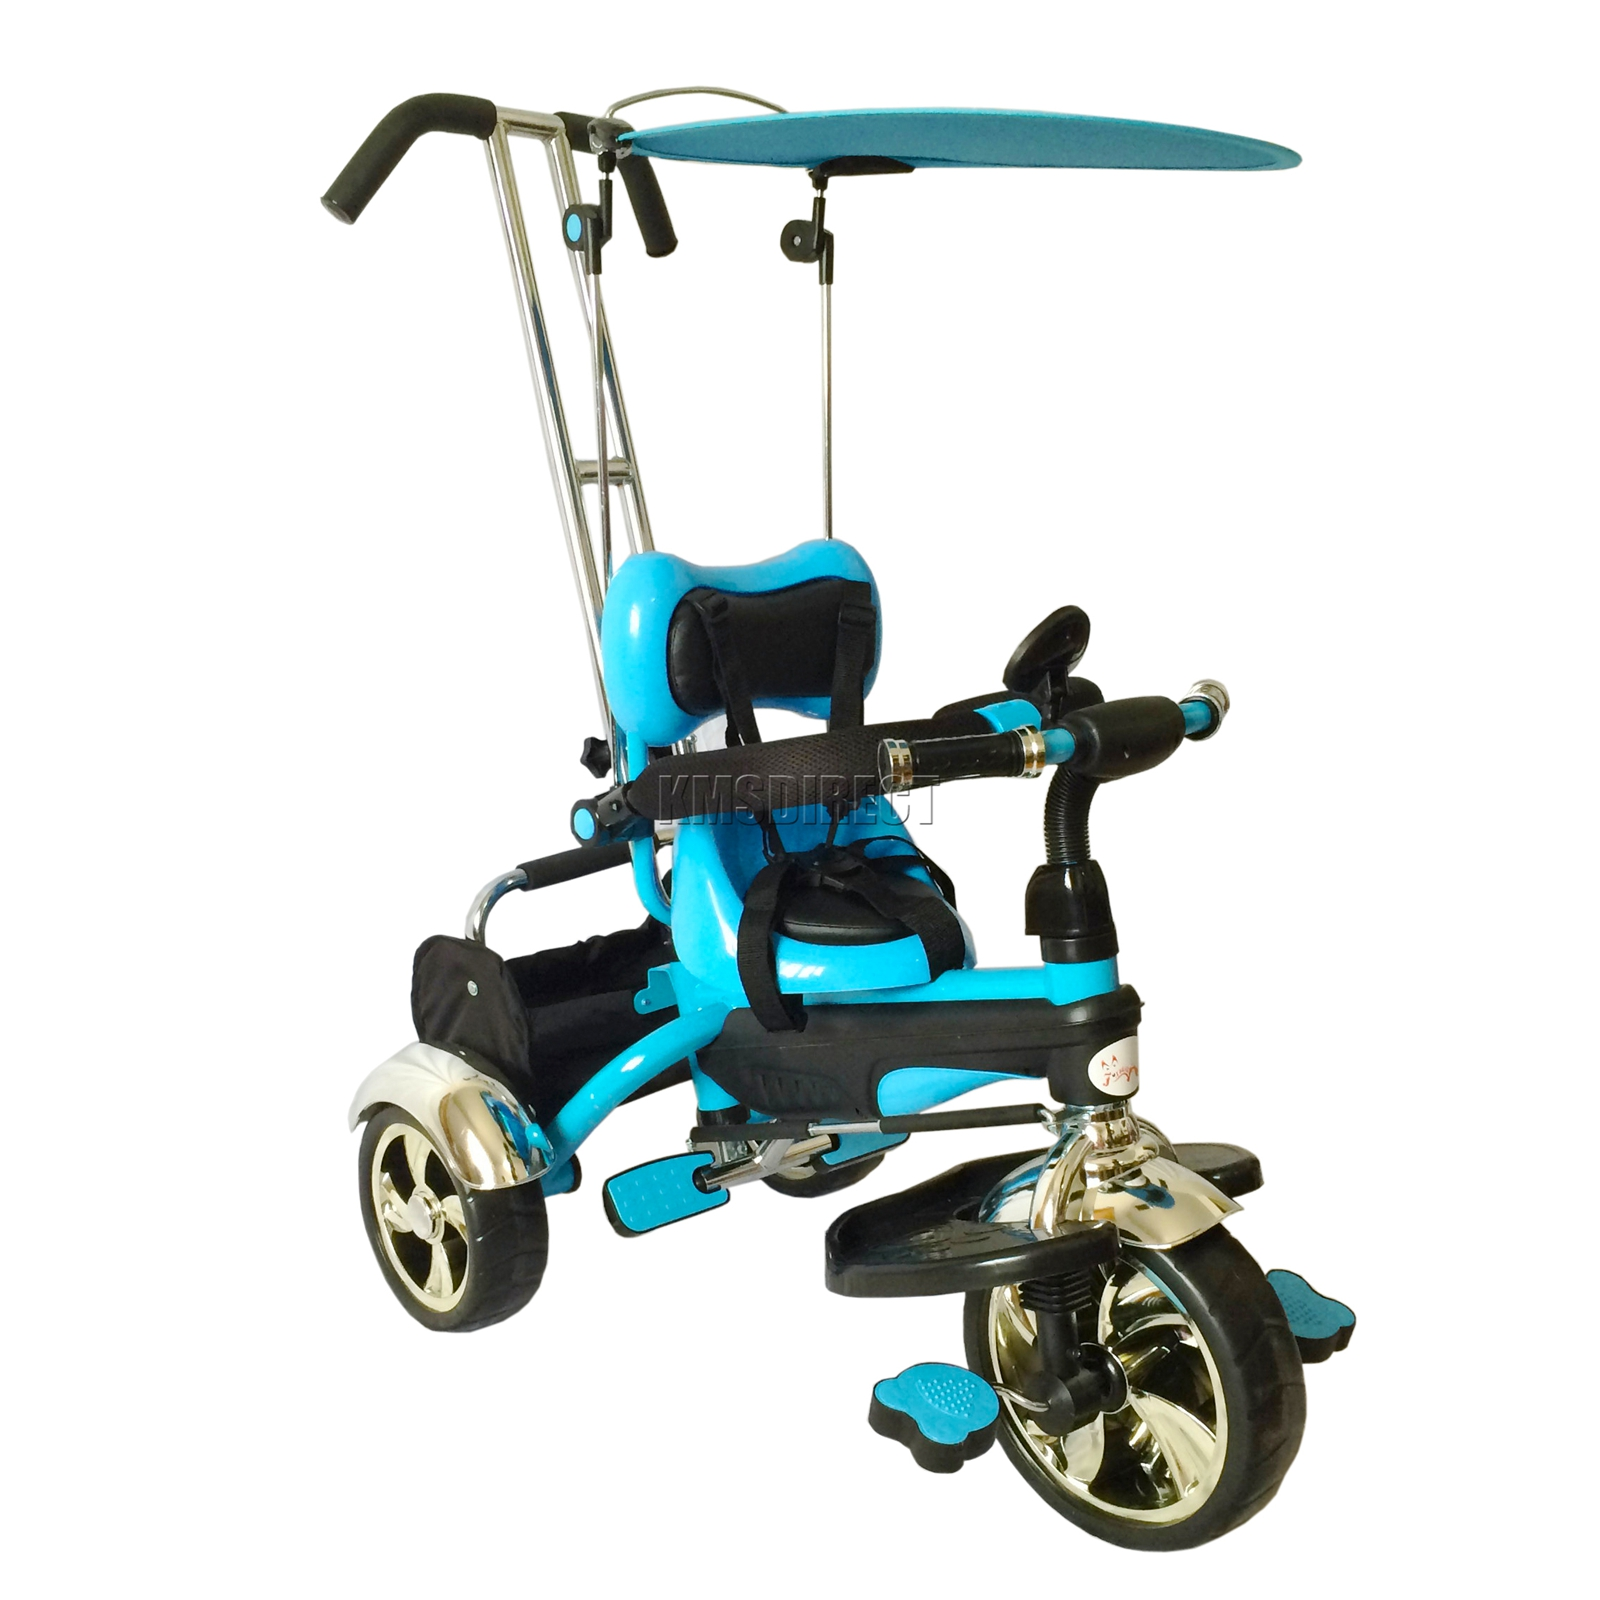 Foxhunter 4in1 Kids Children Trike Tricycle 3 Wheel Ride